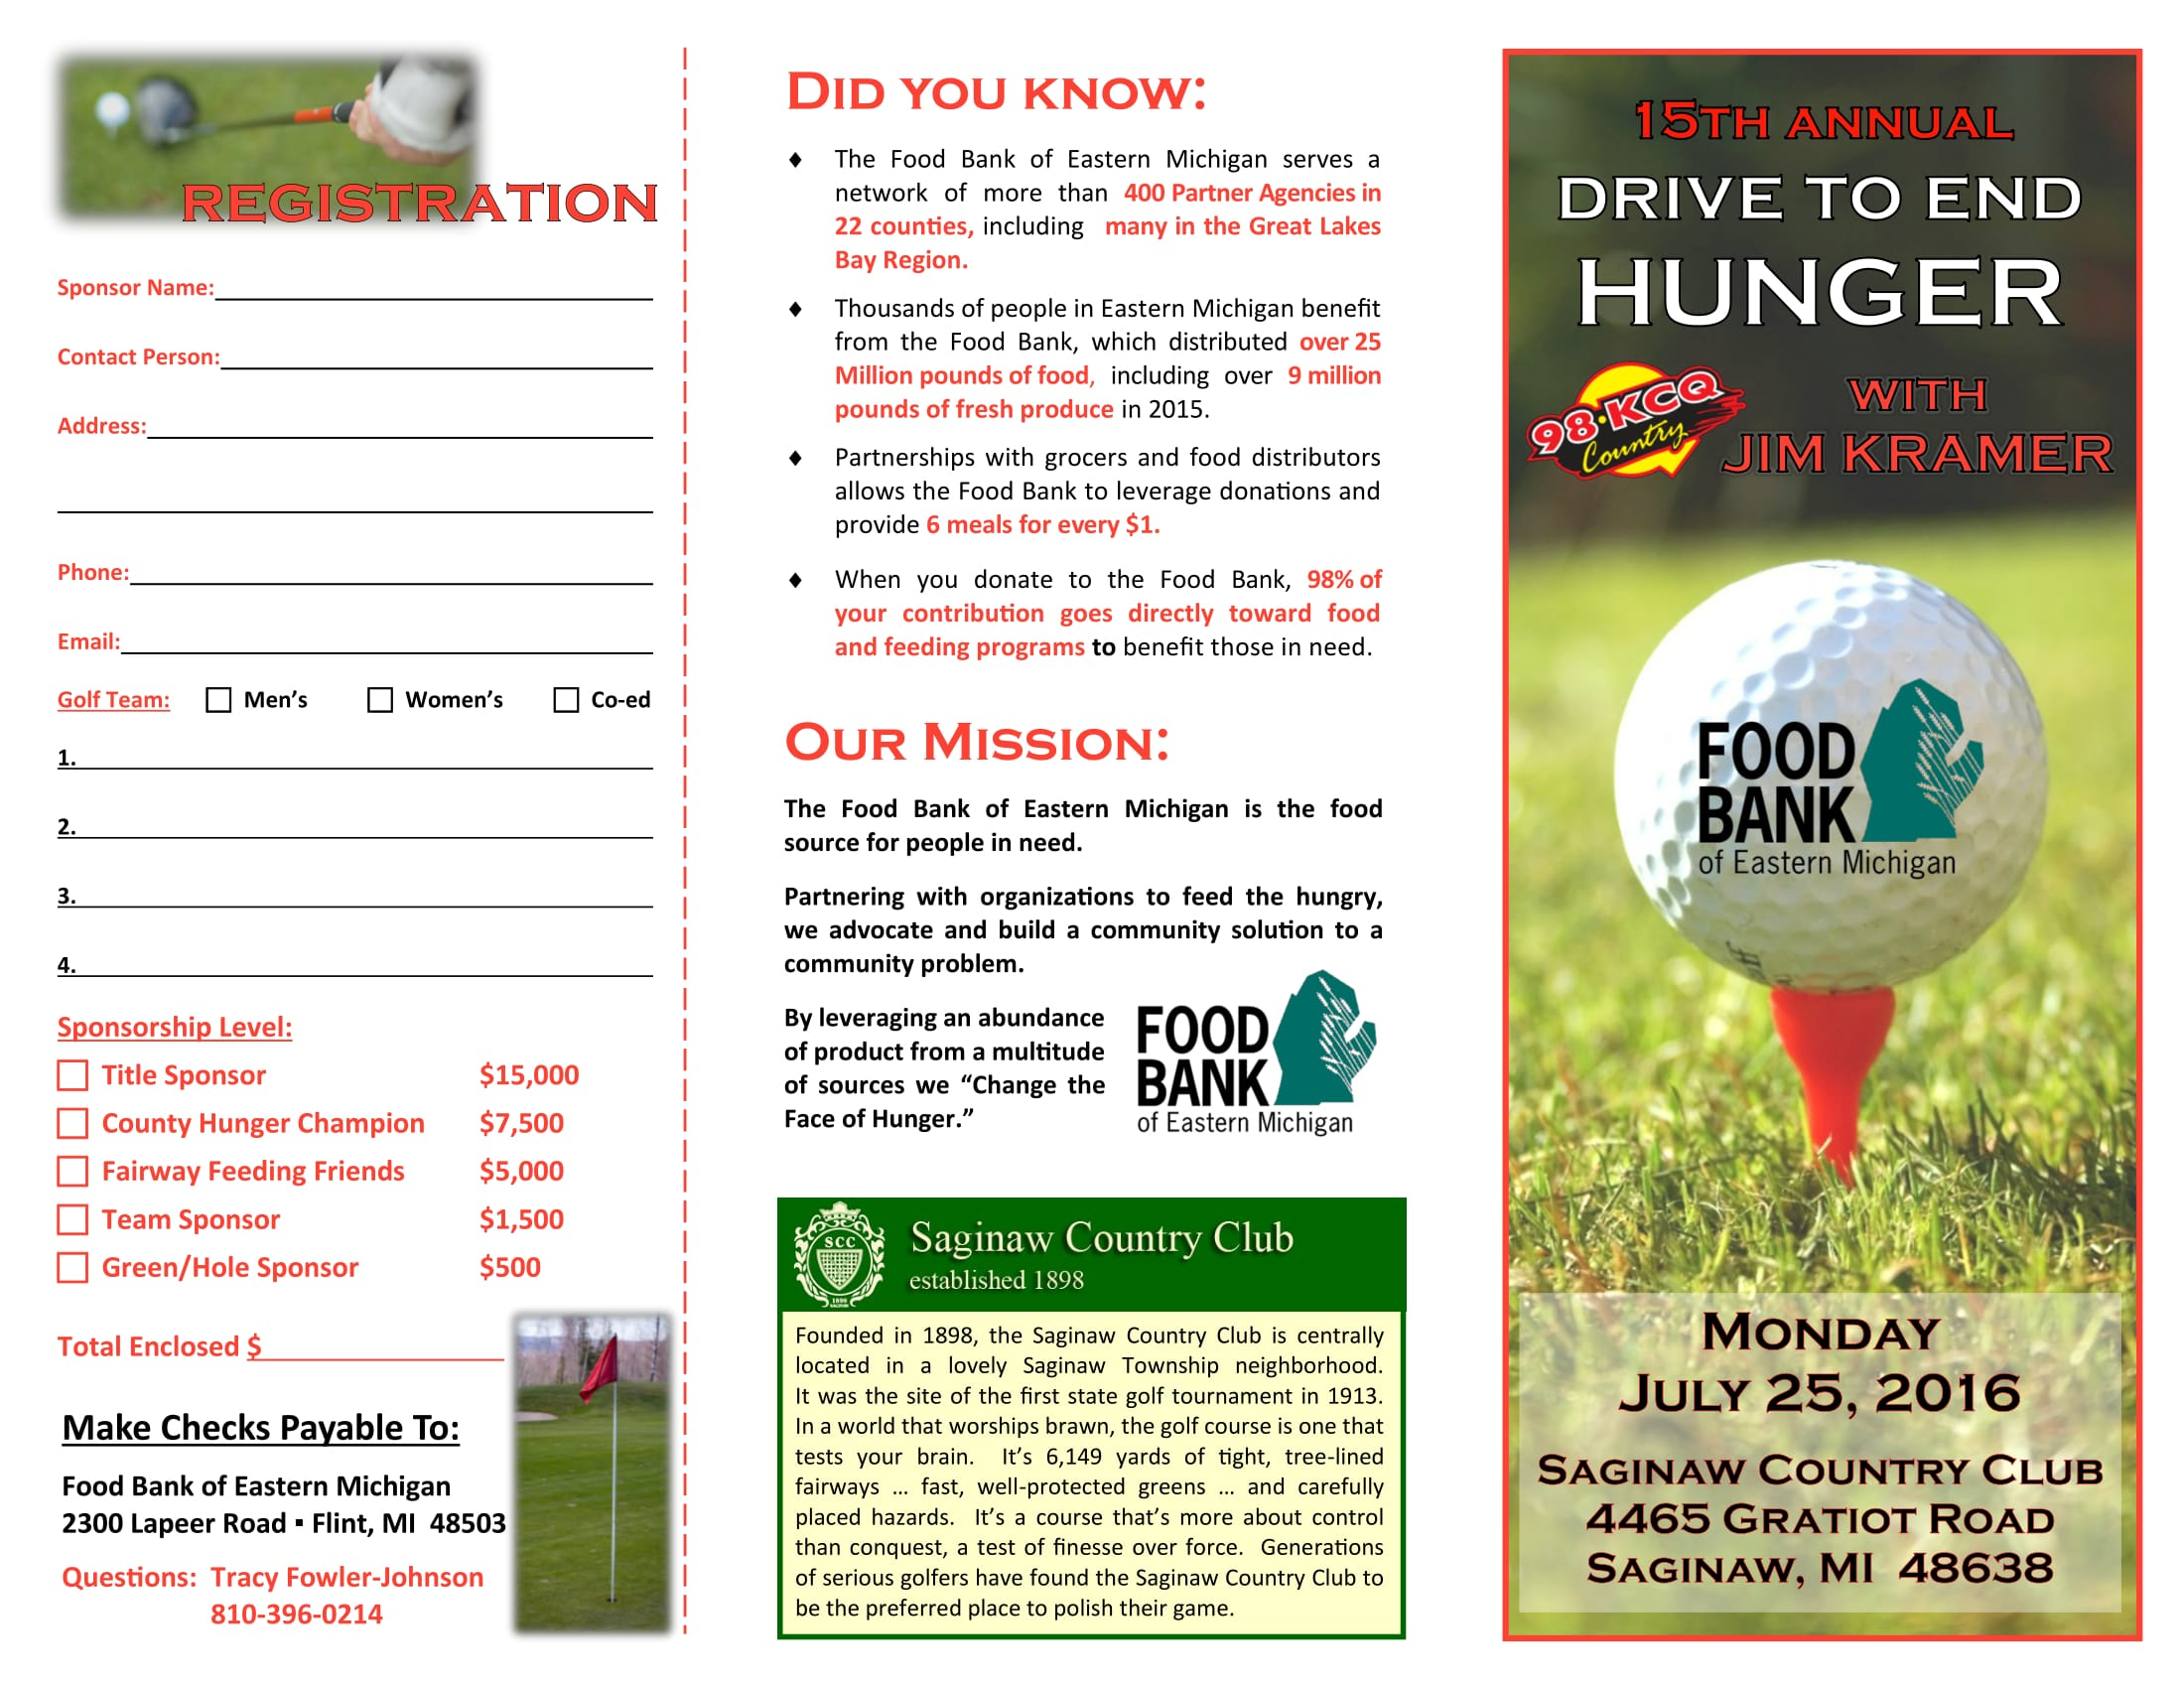 Food Bank of Eastern Michigan Drive to End Hunger Brochure -